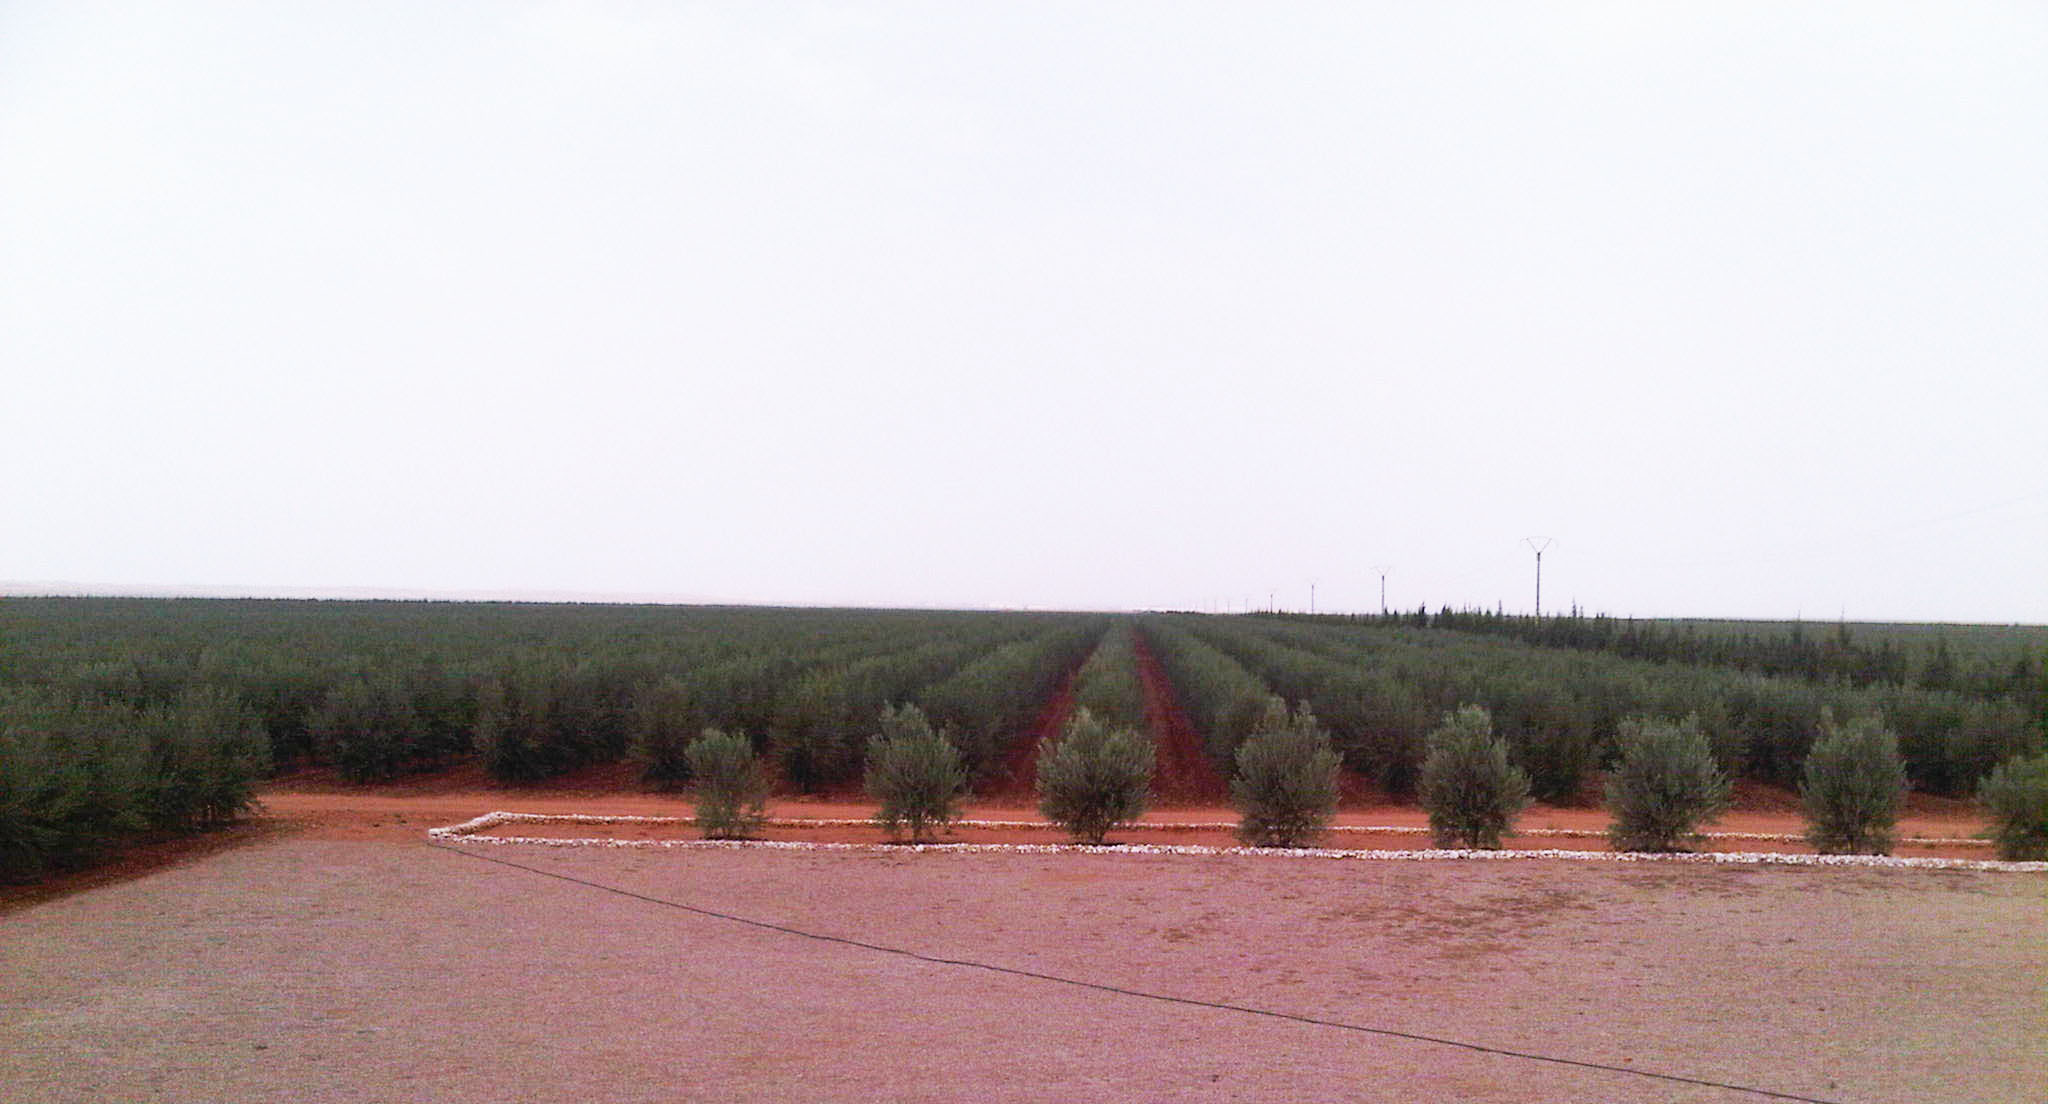 olive%20trees%20mechanized%20planting.jp